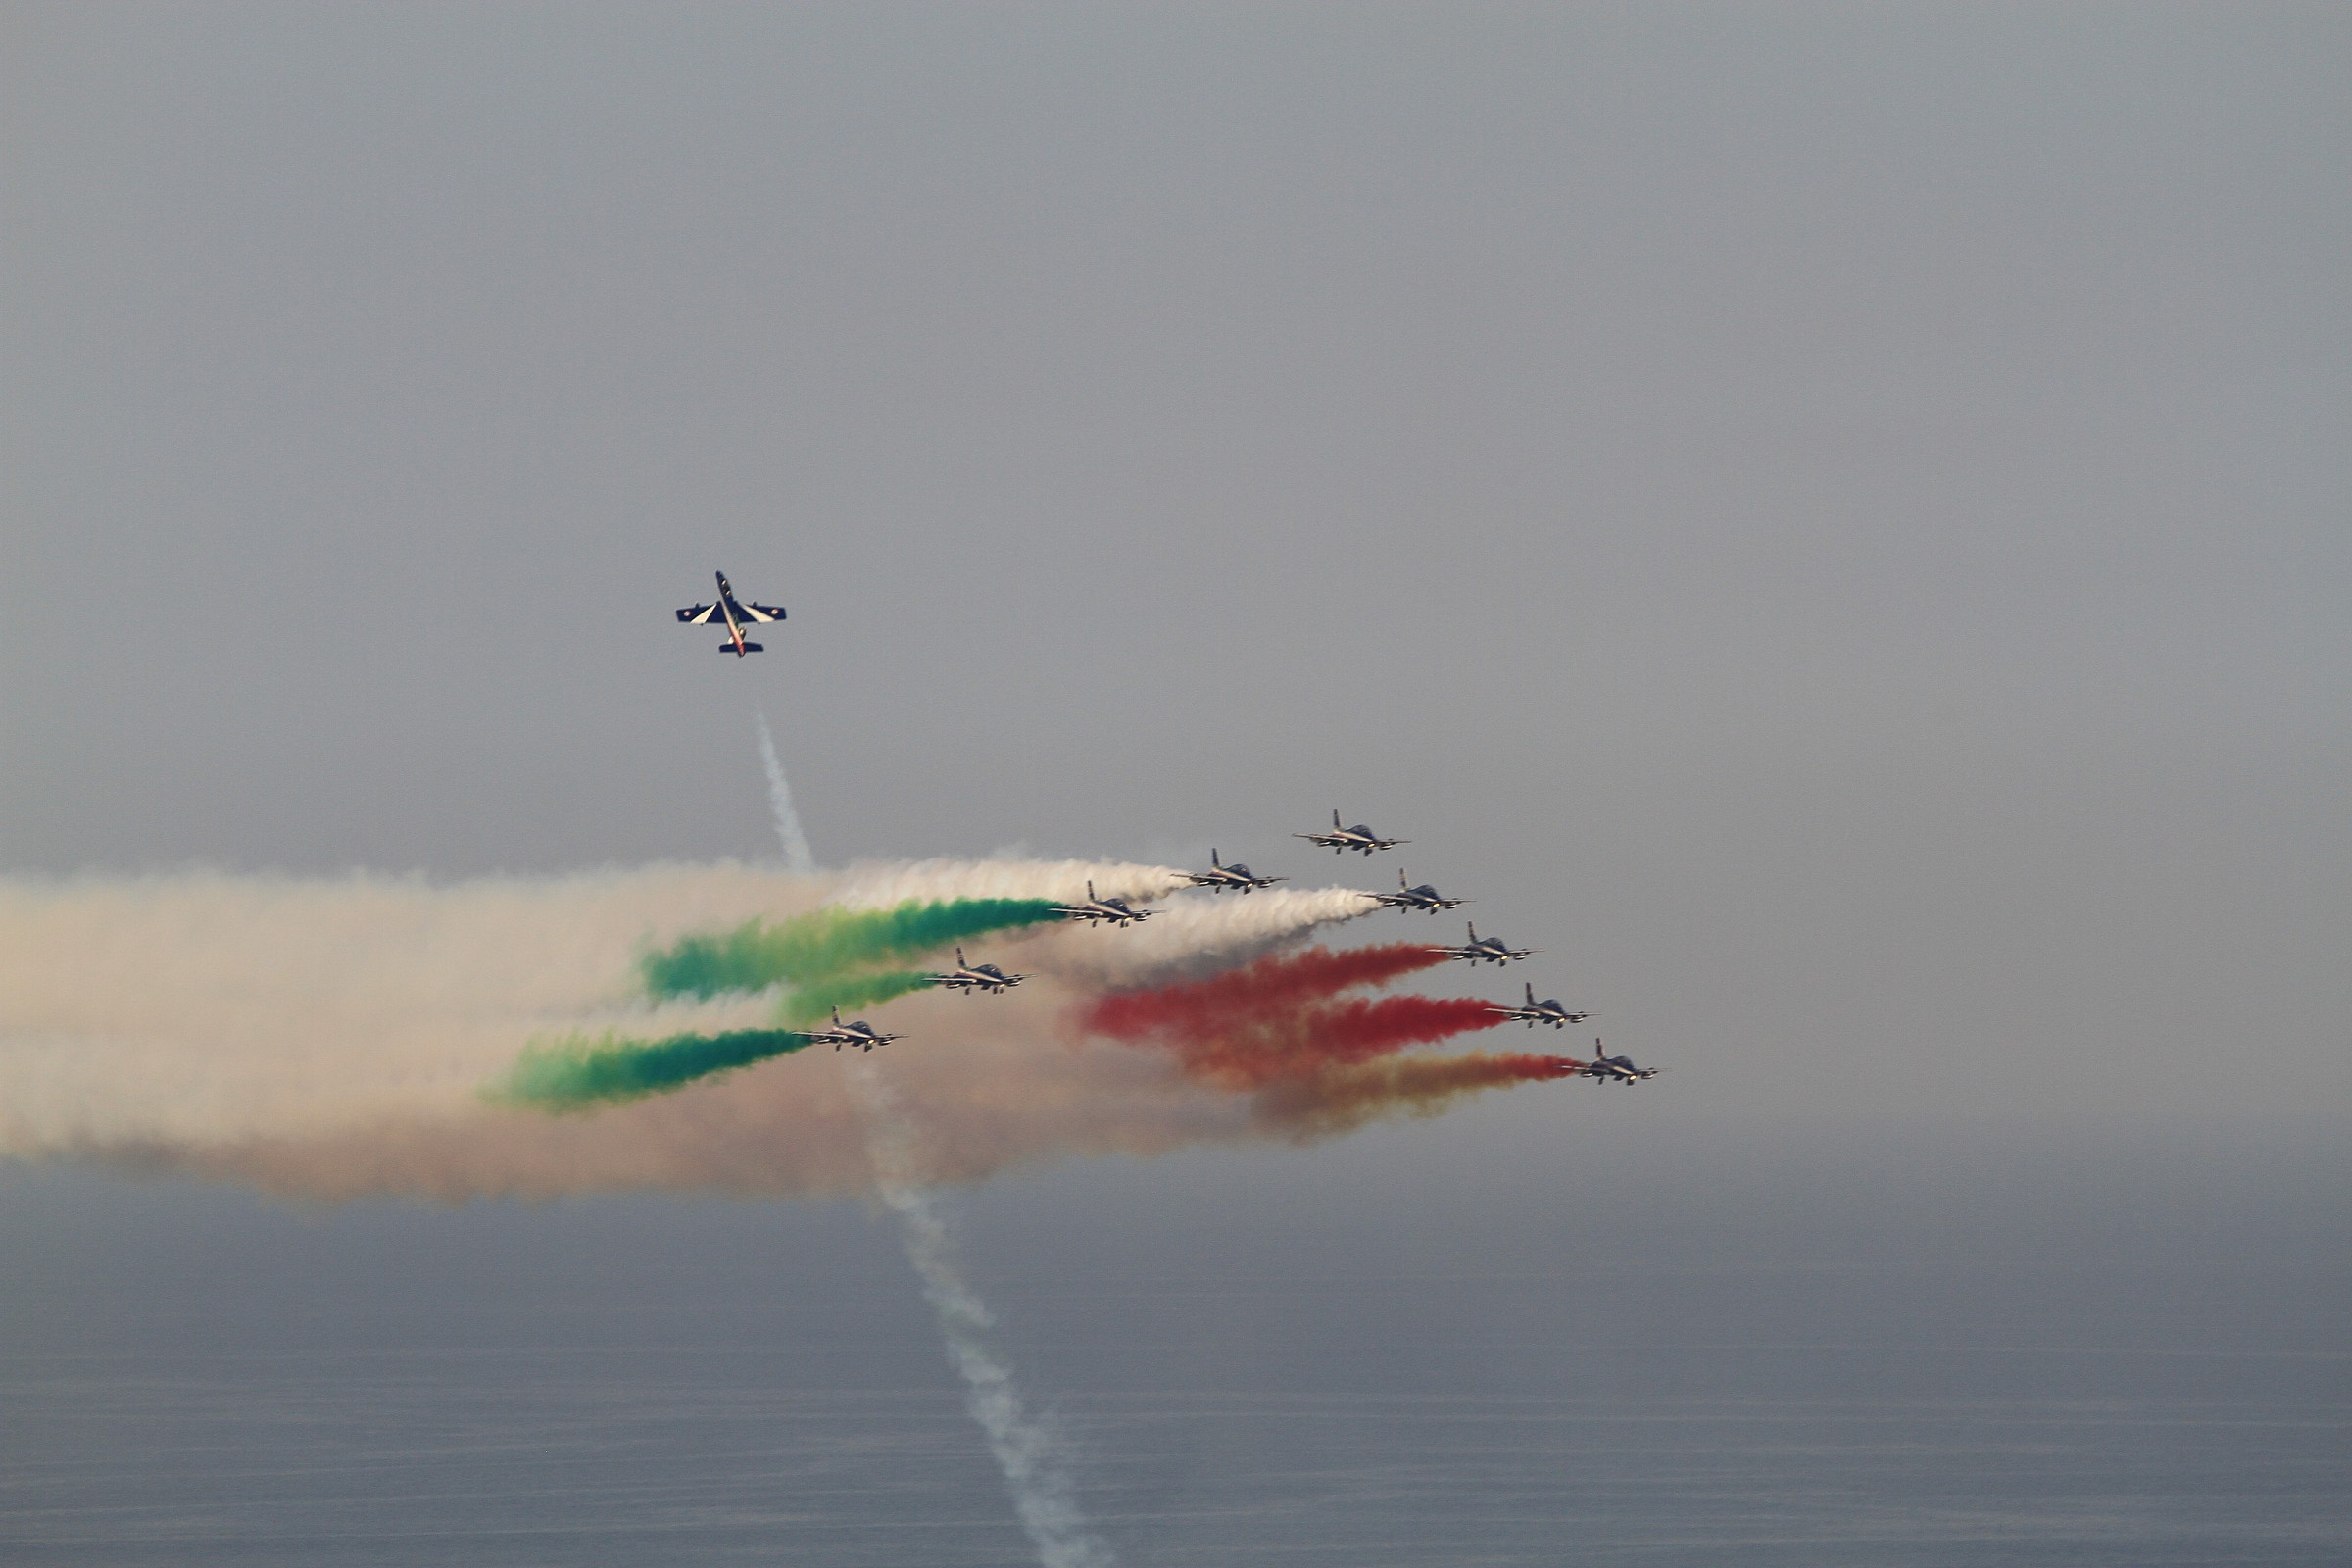 The Tricolore 1...